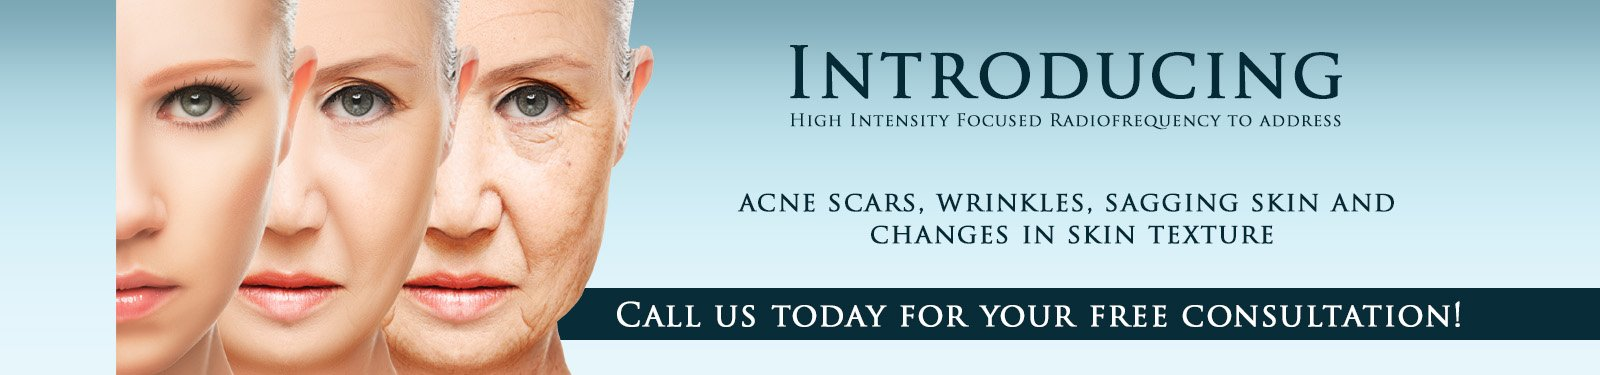 Introducing High Intensity Focused Radiofrequency, Anti-Aging Center Portland